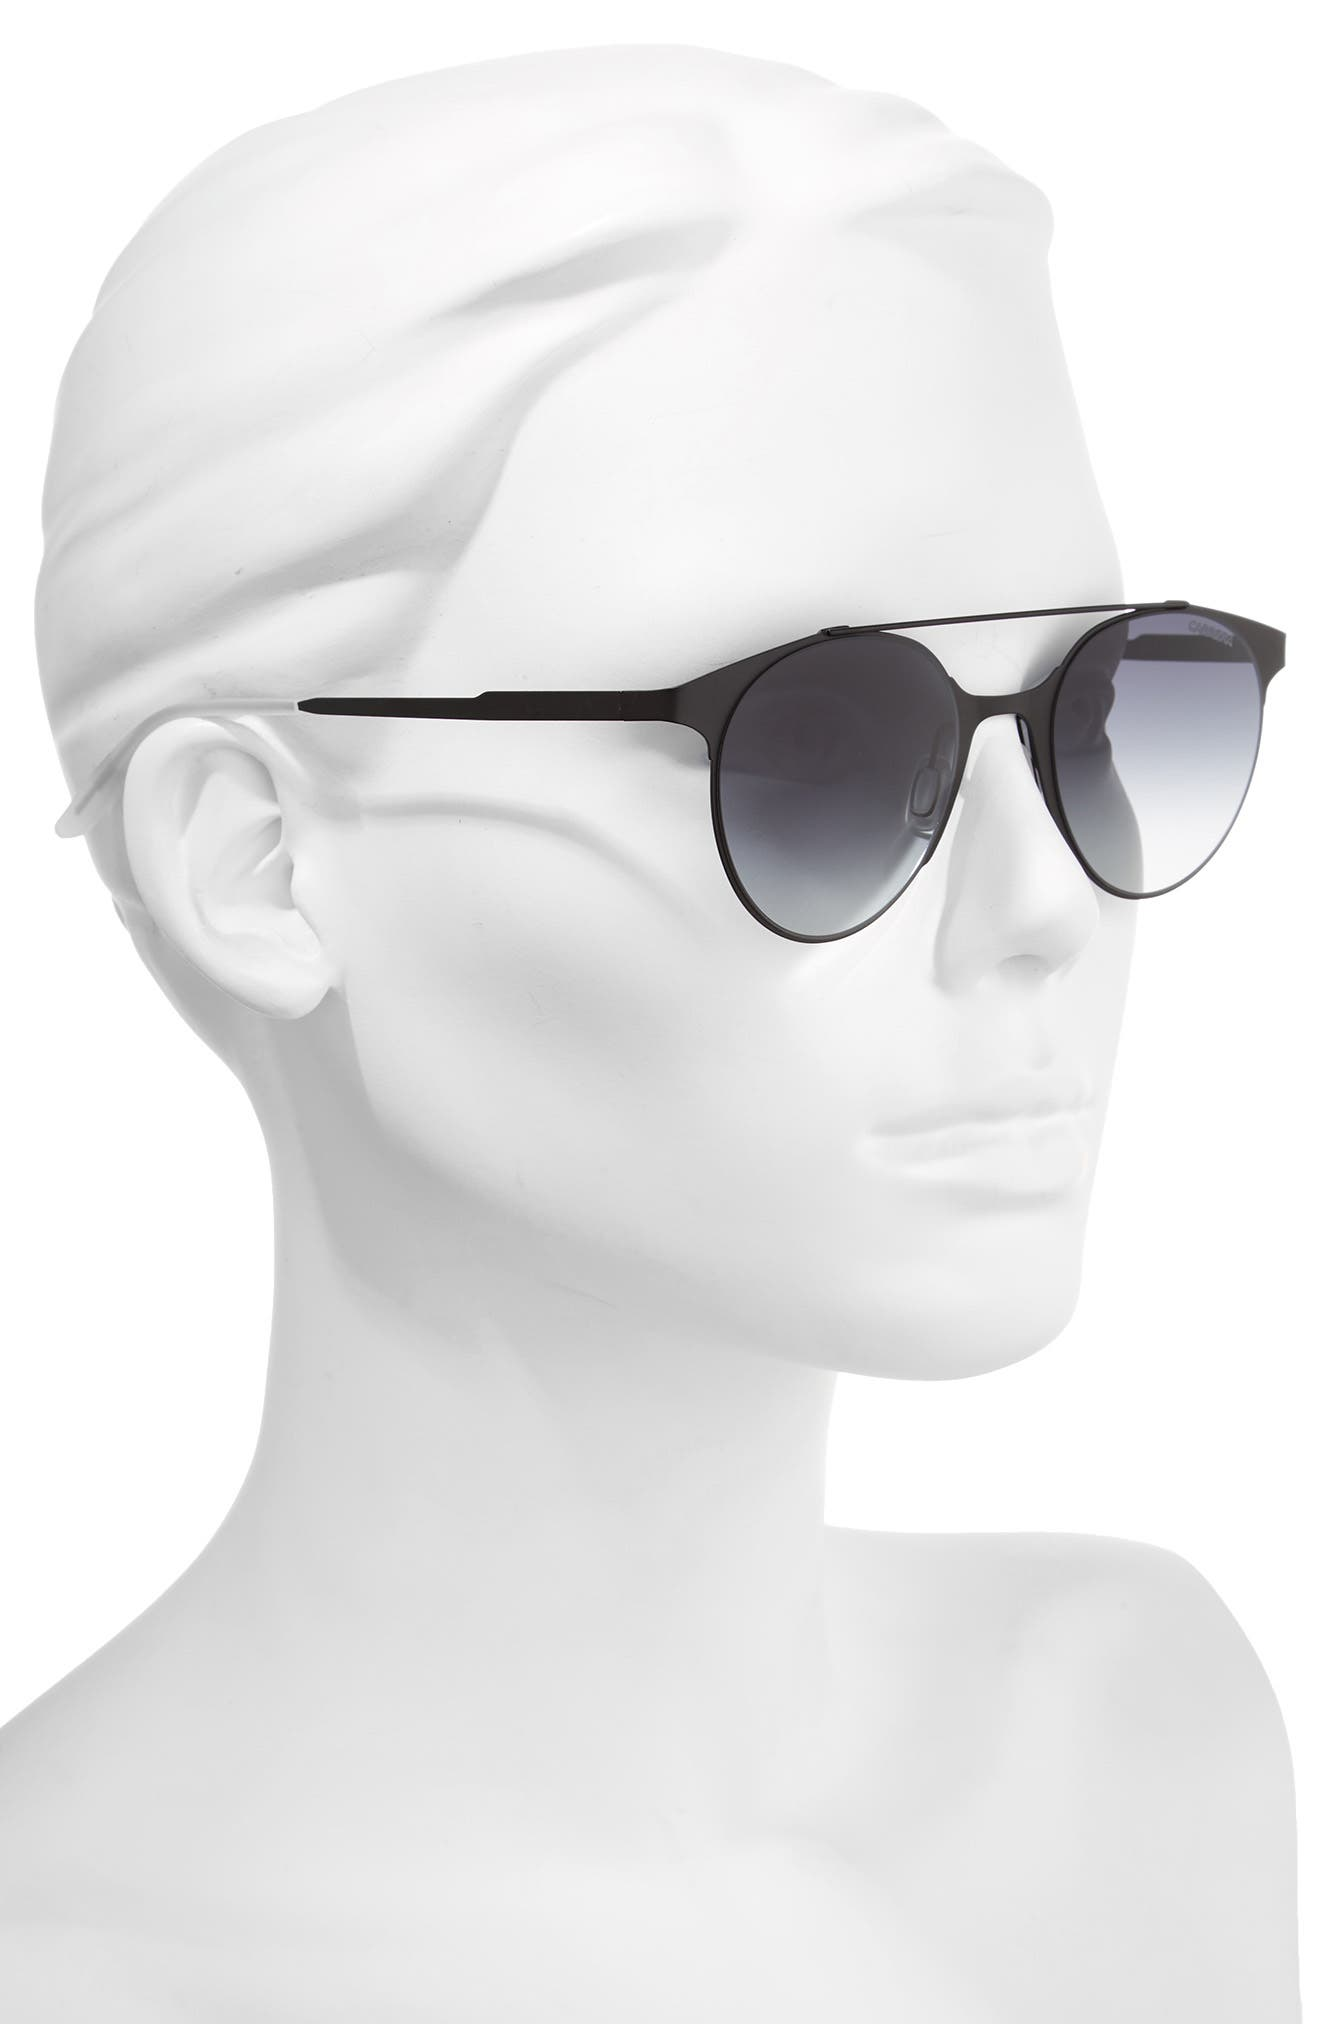 50mm Gradient Round Sunglasses,                             Alternate thumbnail 2, color,                             001